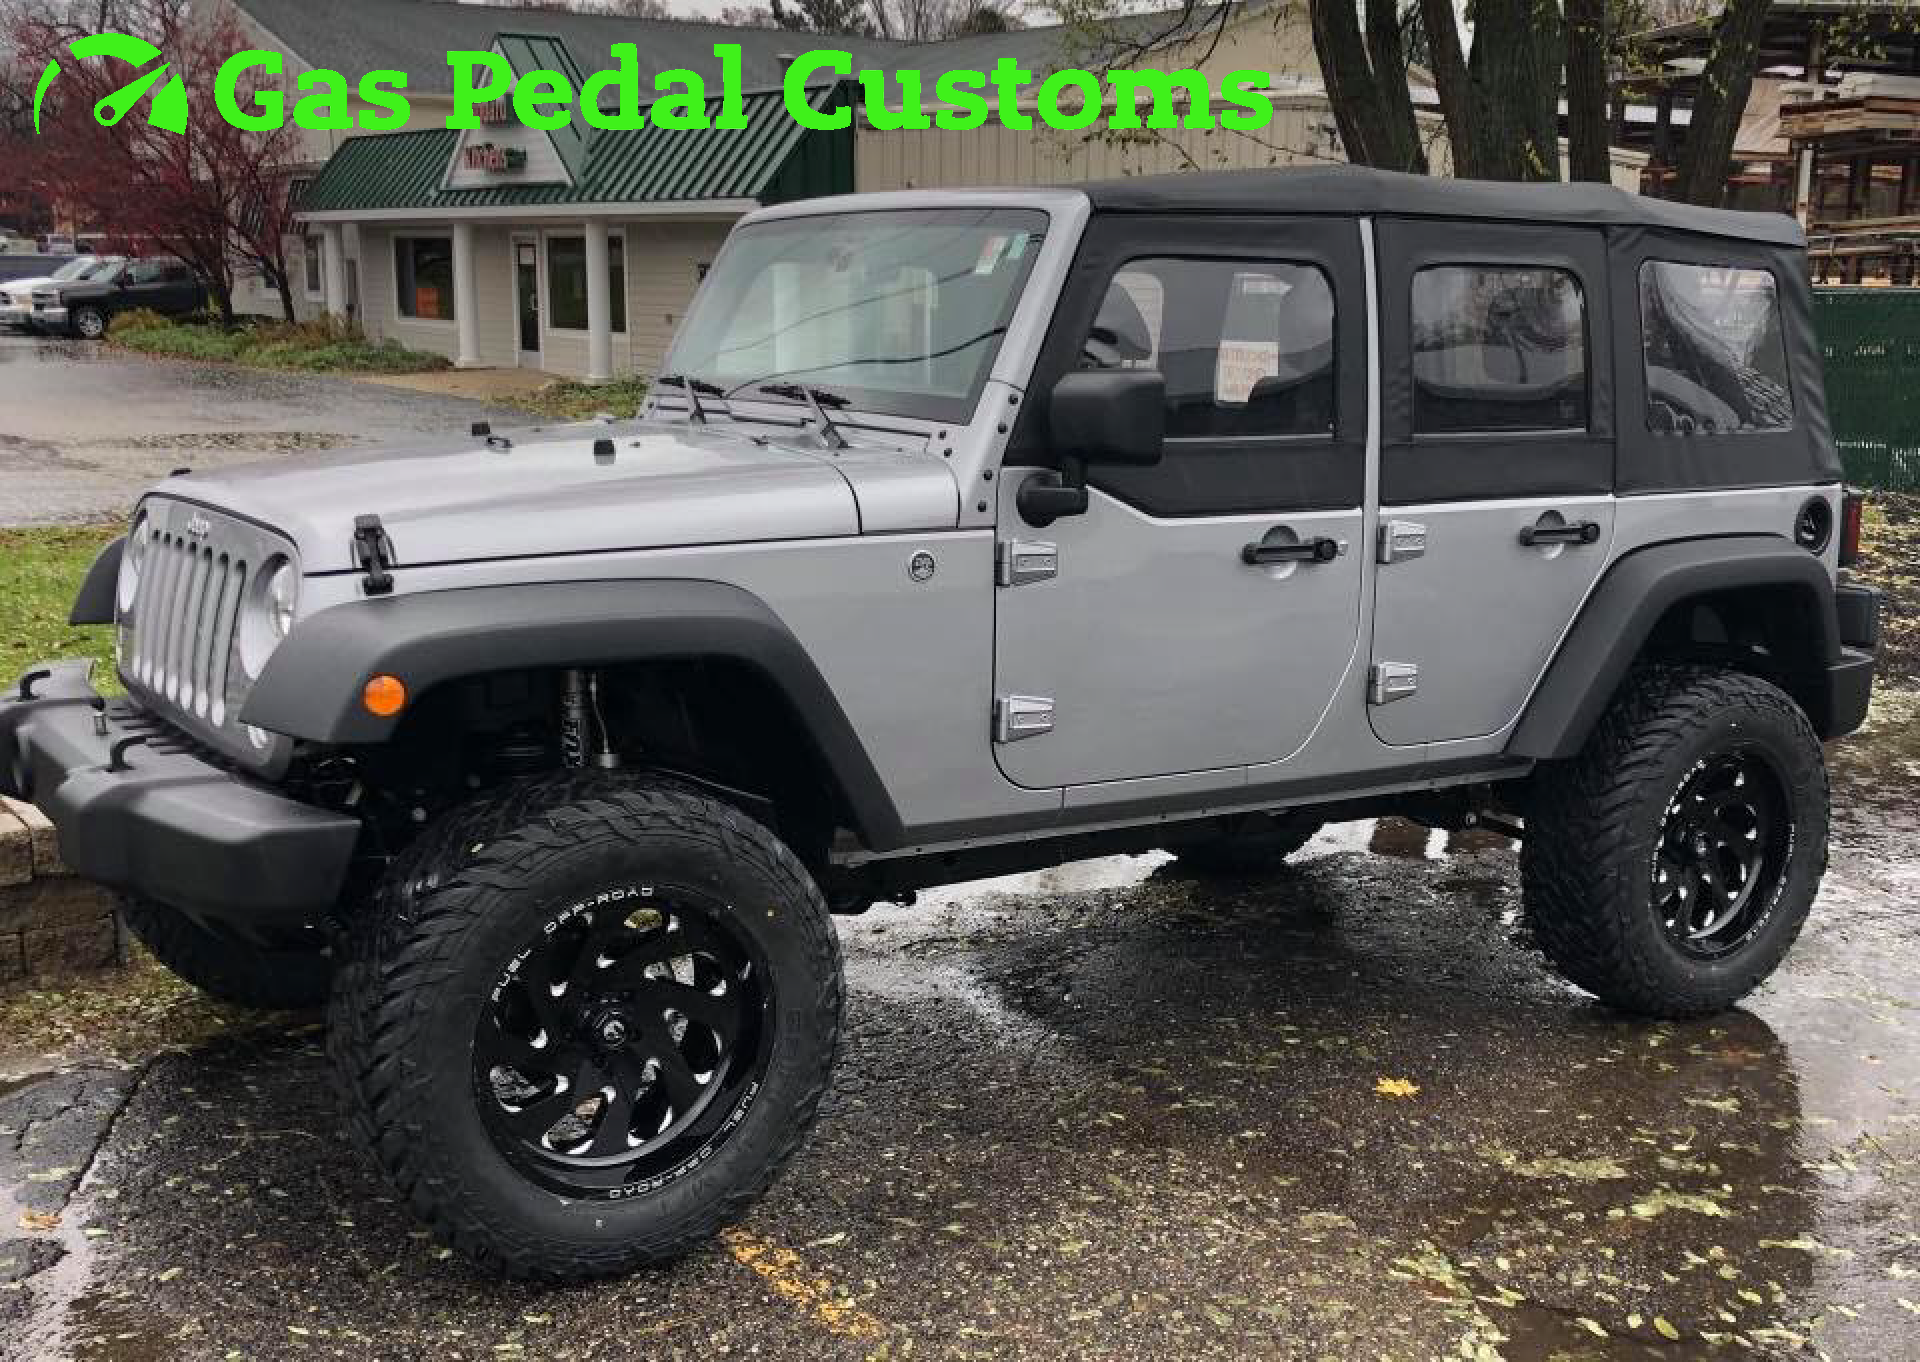 medium resolution of jeep wrangler with jks suspension fuel offroad wheels fox shocks and fuel tires gas pedal customs jeeps hemi jeep conversions customs jeeps jeep